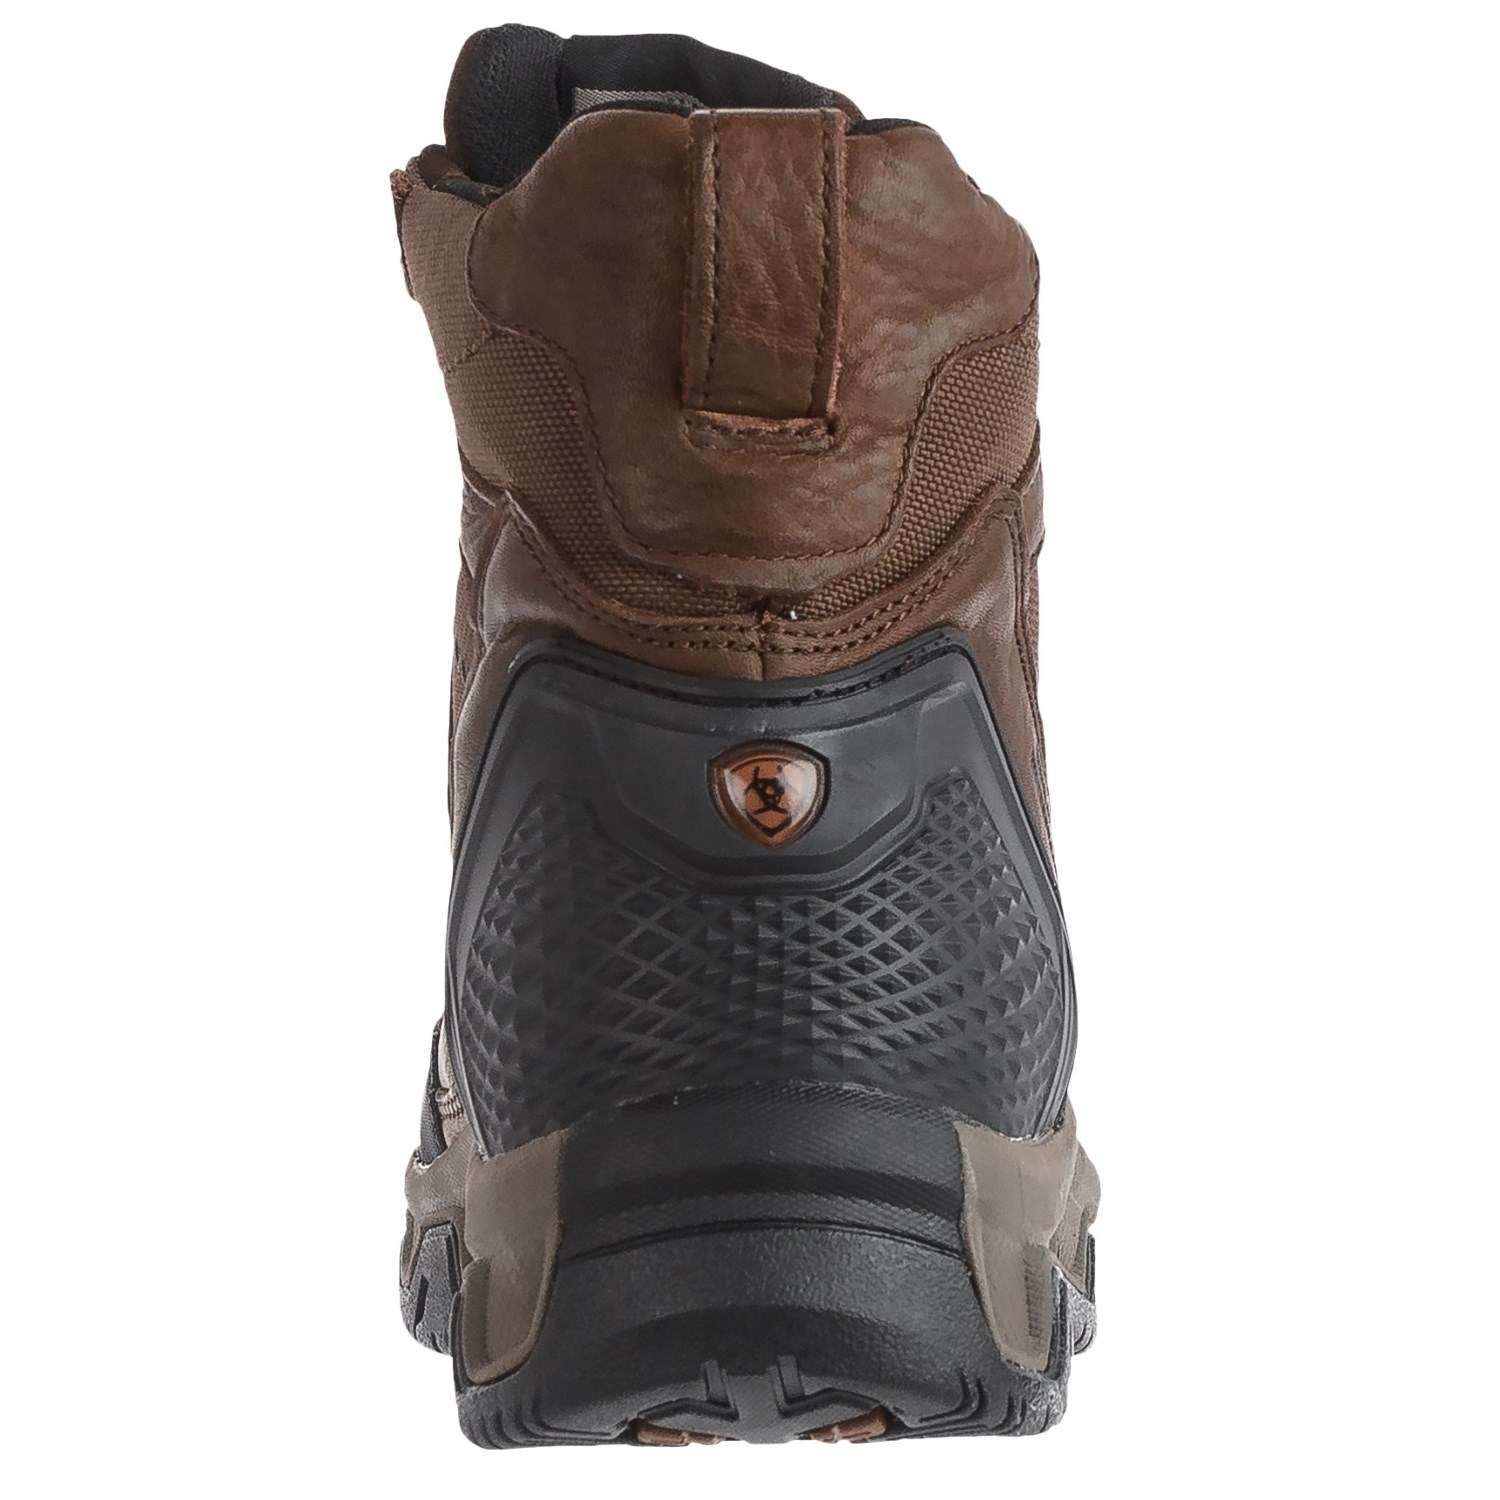 Ariat Creston H2O Insulated Work Boots (For Men) - Save 48%